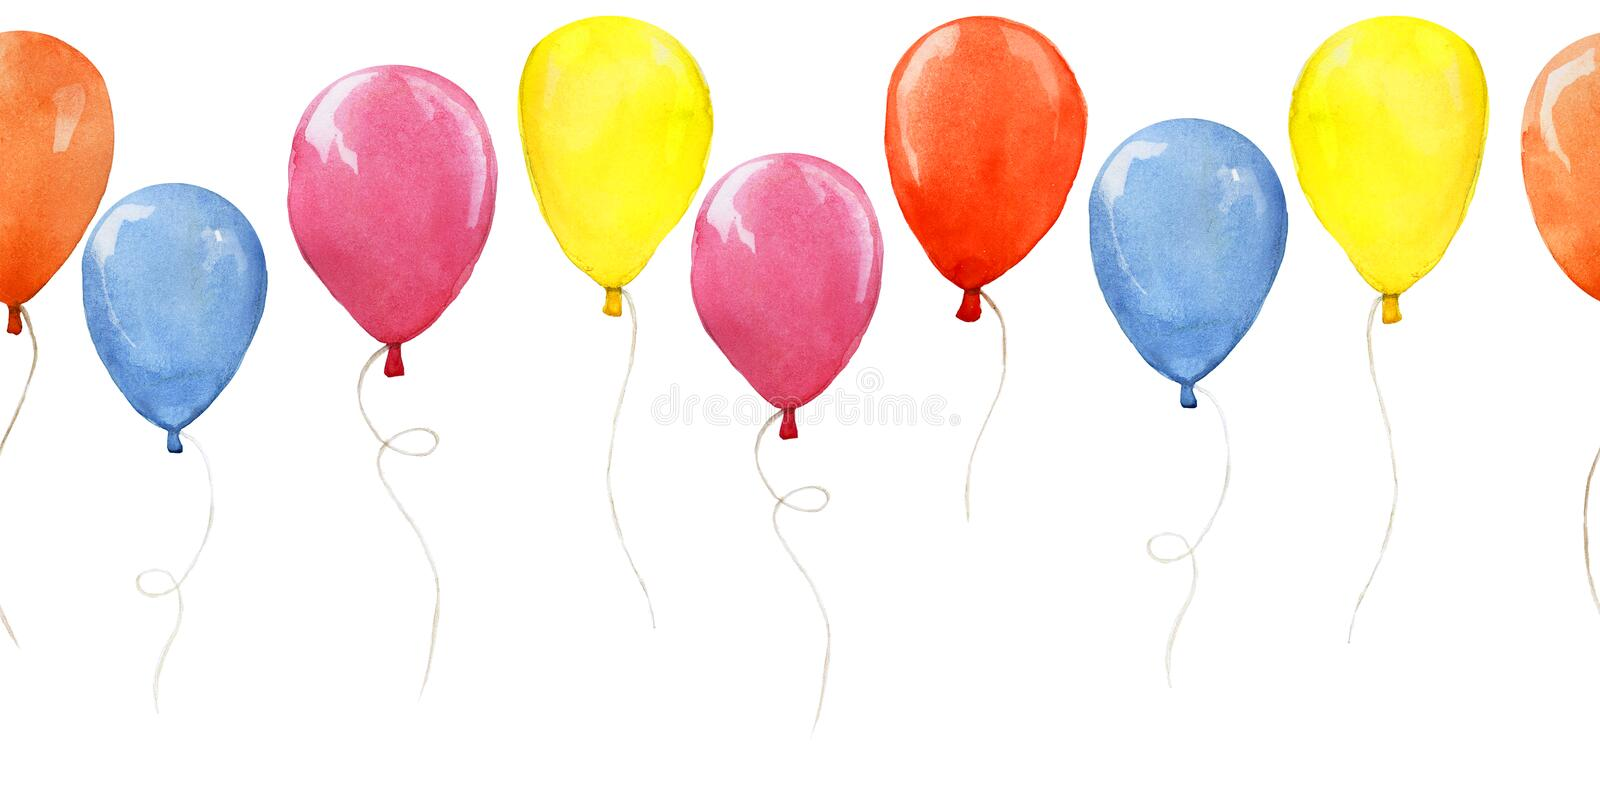 Balloons Clipart Photos Free Royalty Free Stock Photos From Dreamstime